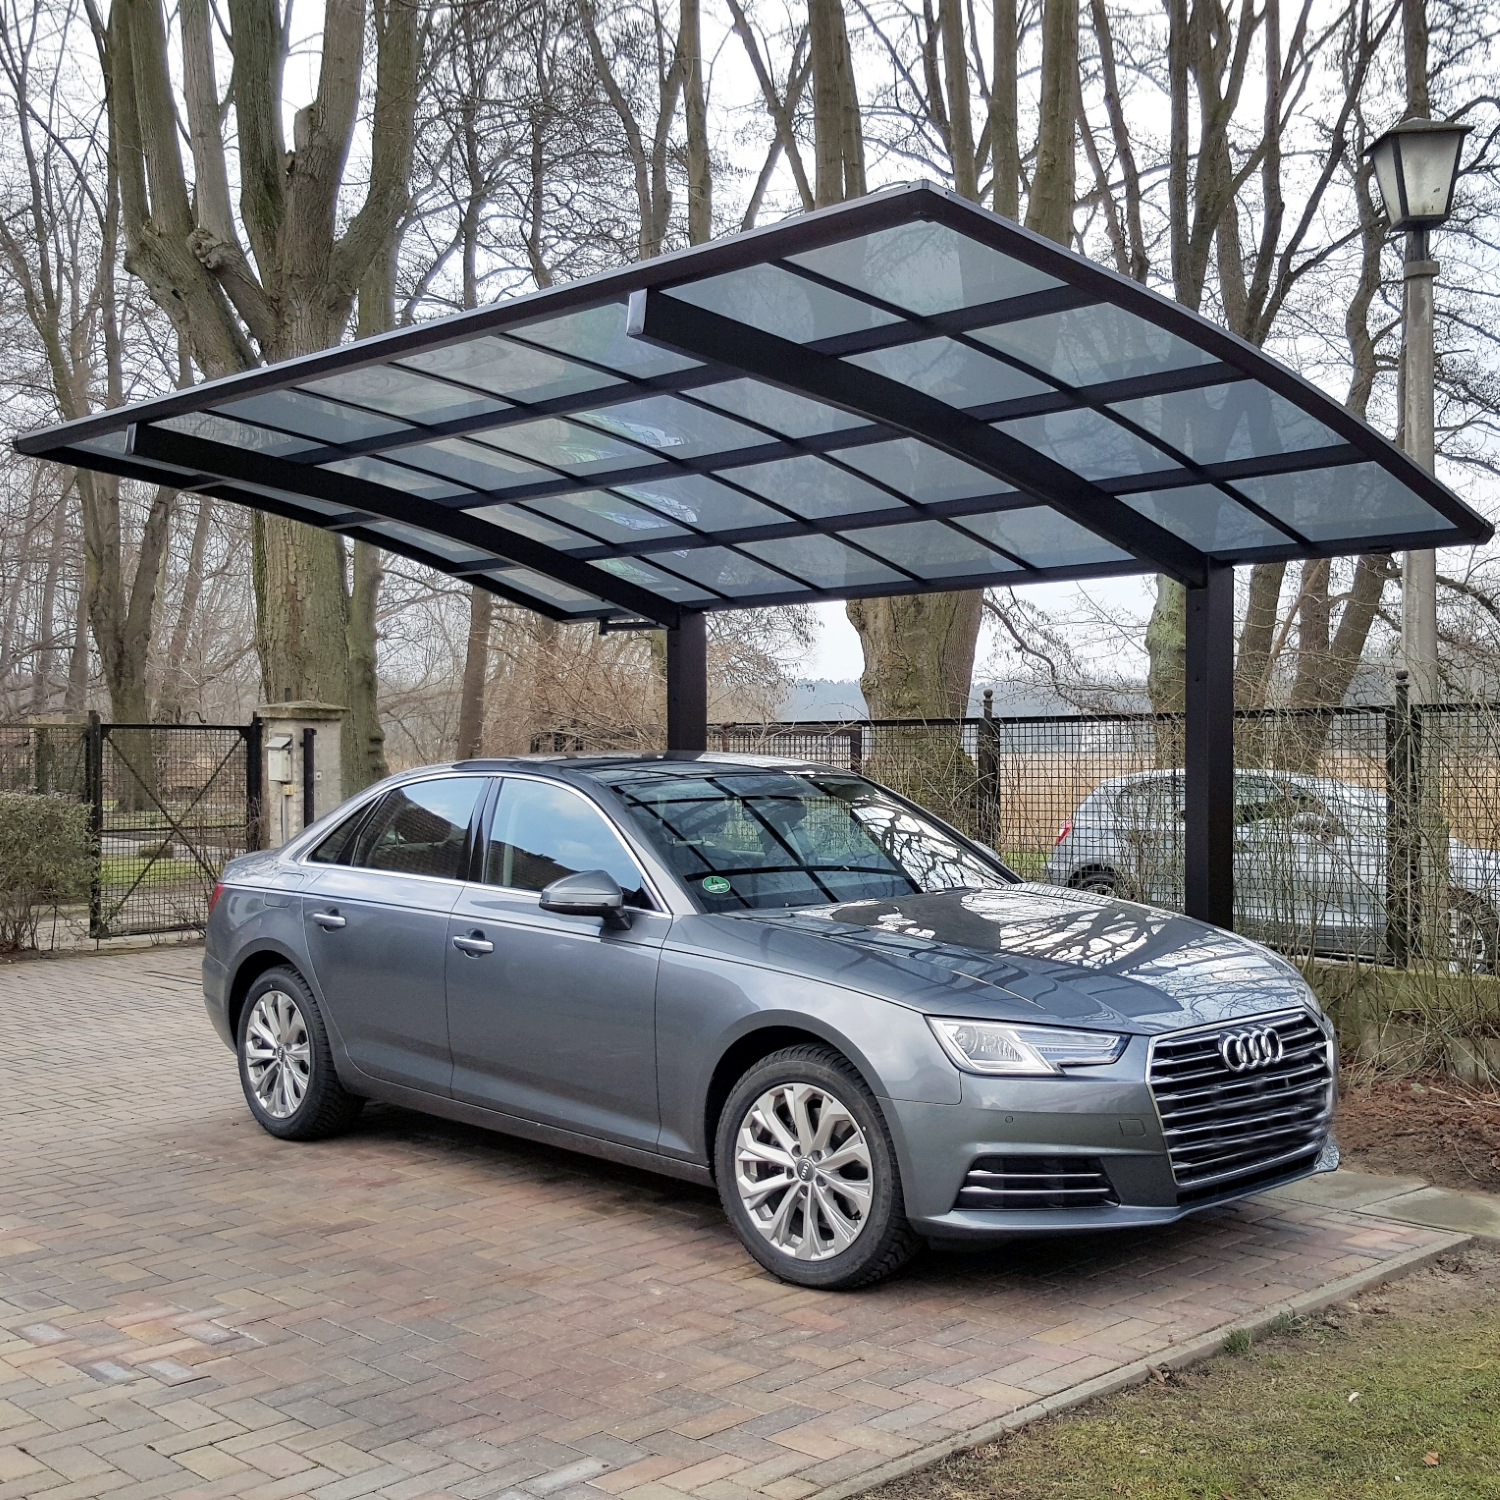 carport bogendach aluminium garage freistehend einzelcarport mattbraun 495x270cm ebay. Black Bedroom Furniture Sets. Home Design Ideas